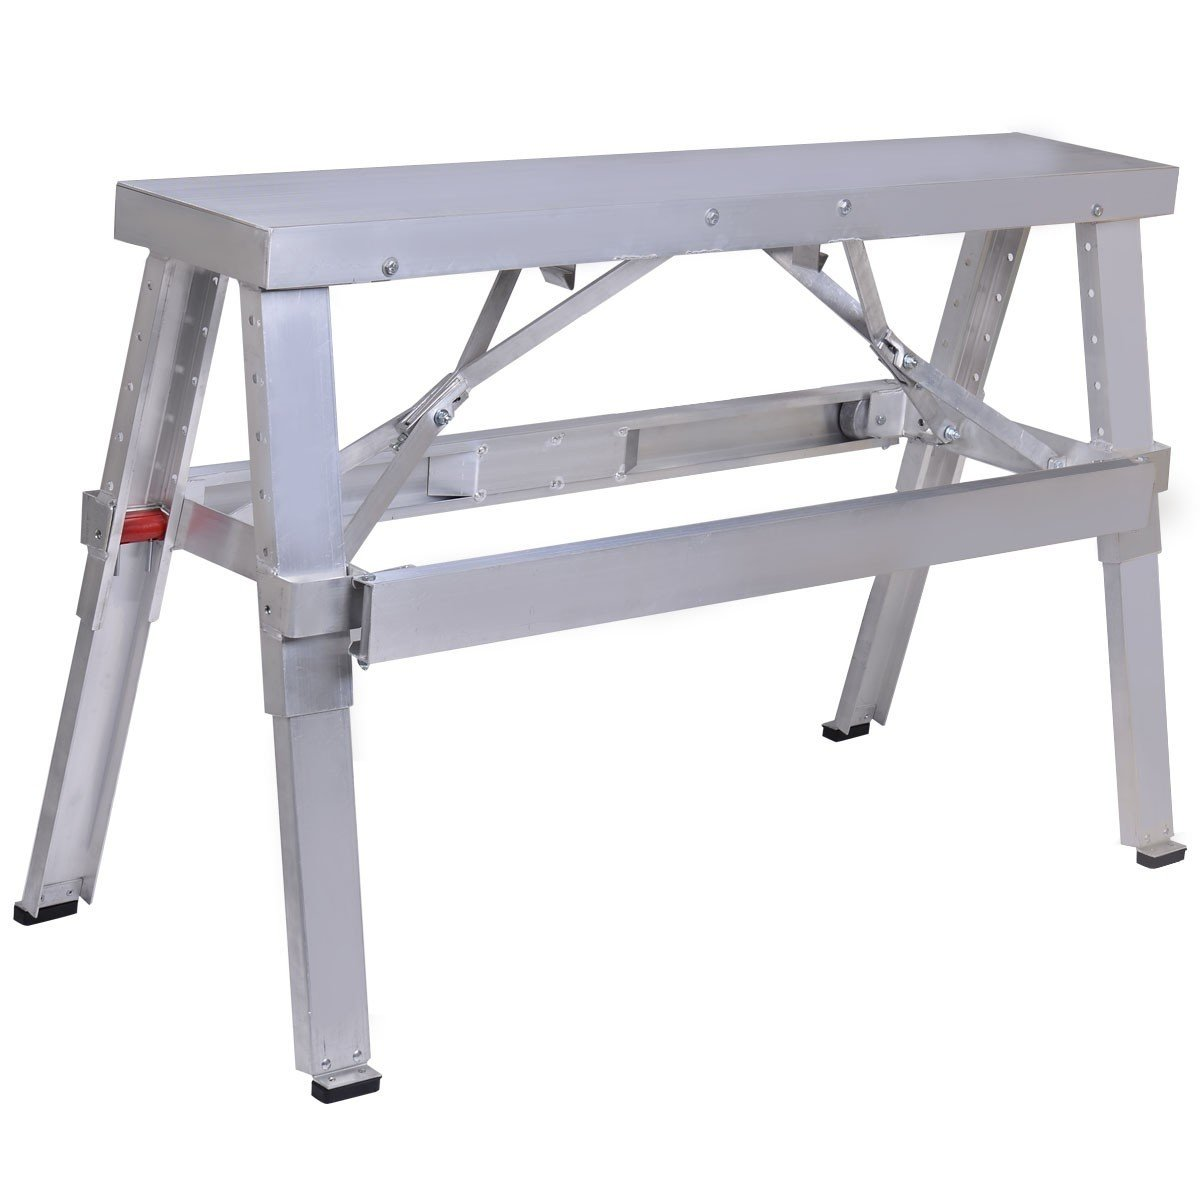 Apontus Adjustable Height Drywall Taping & Finishing Walk-Up Bench: 18 in. - 30 in.